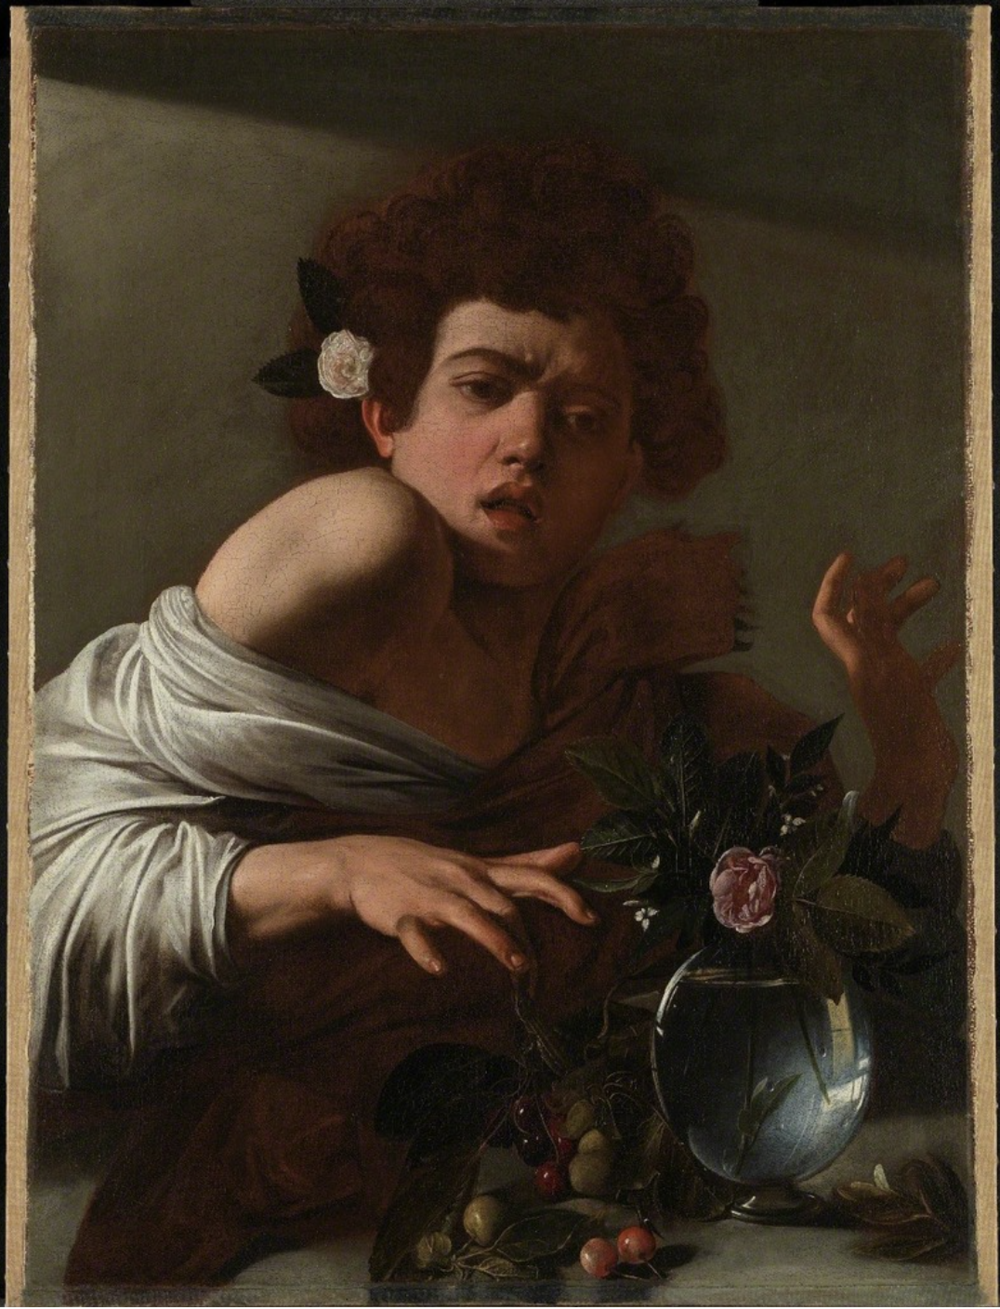 Caravaggio,  Boy Bitten by Lizard,  1594-1595, oil on canvas, 26 x 19.5in (66 x 49.5cm). Courtesy of     artsy.net   .2017.